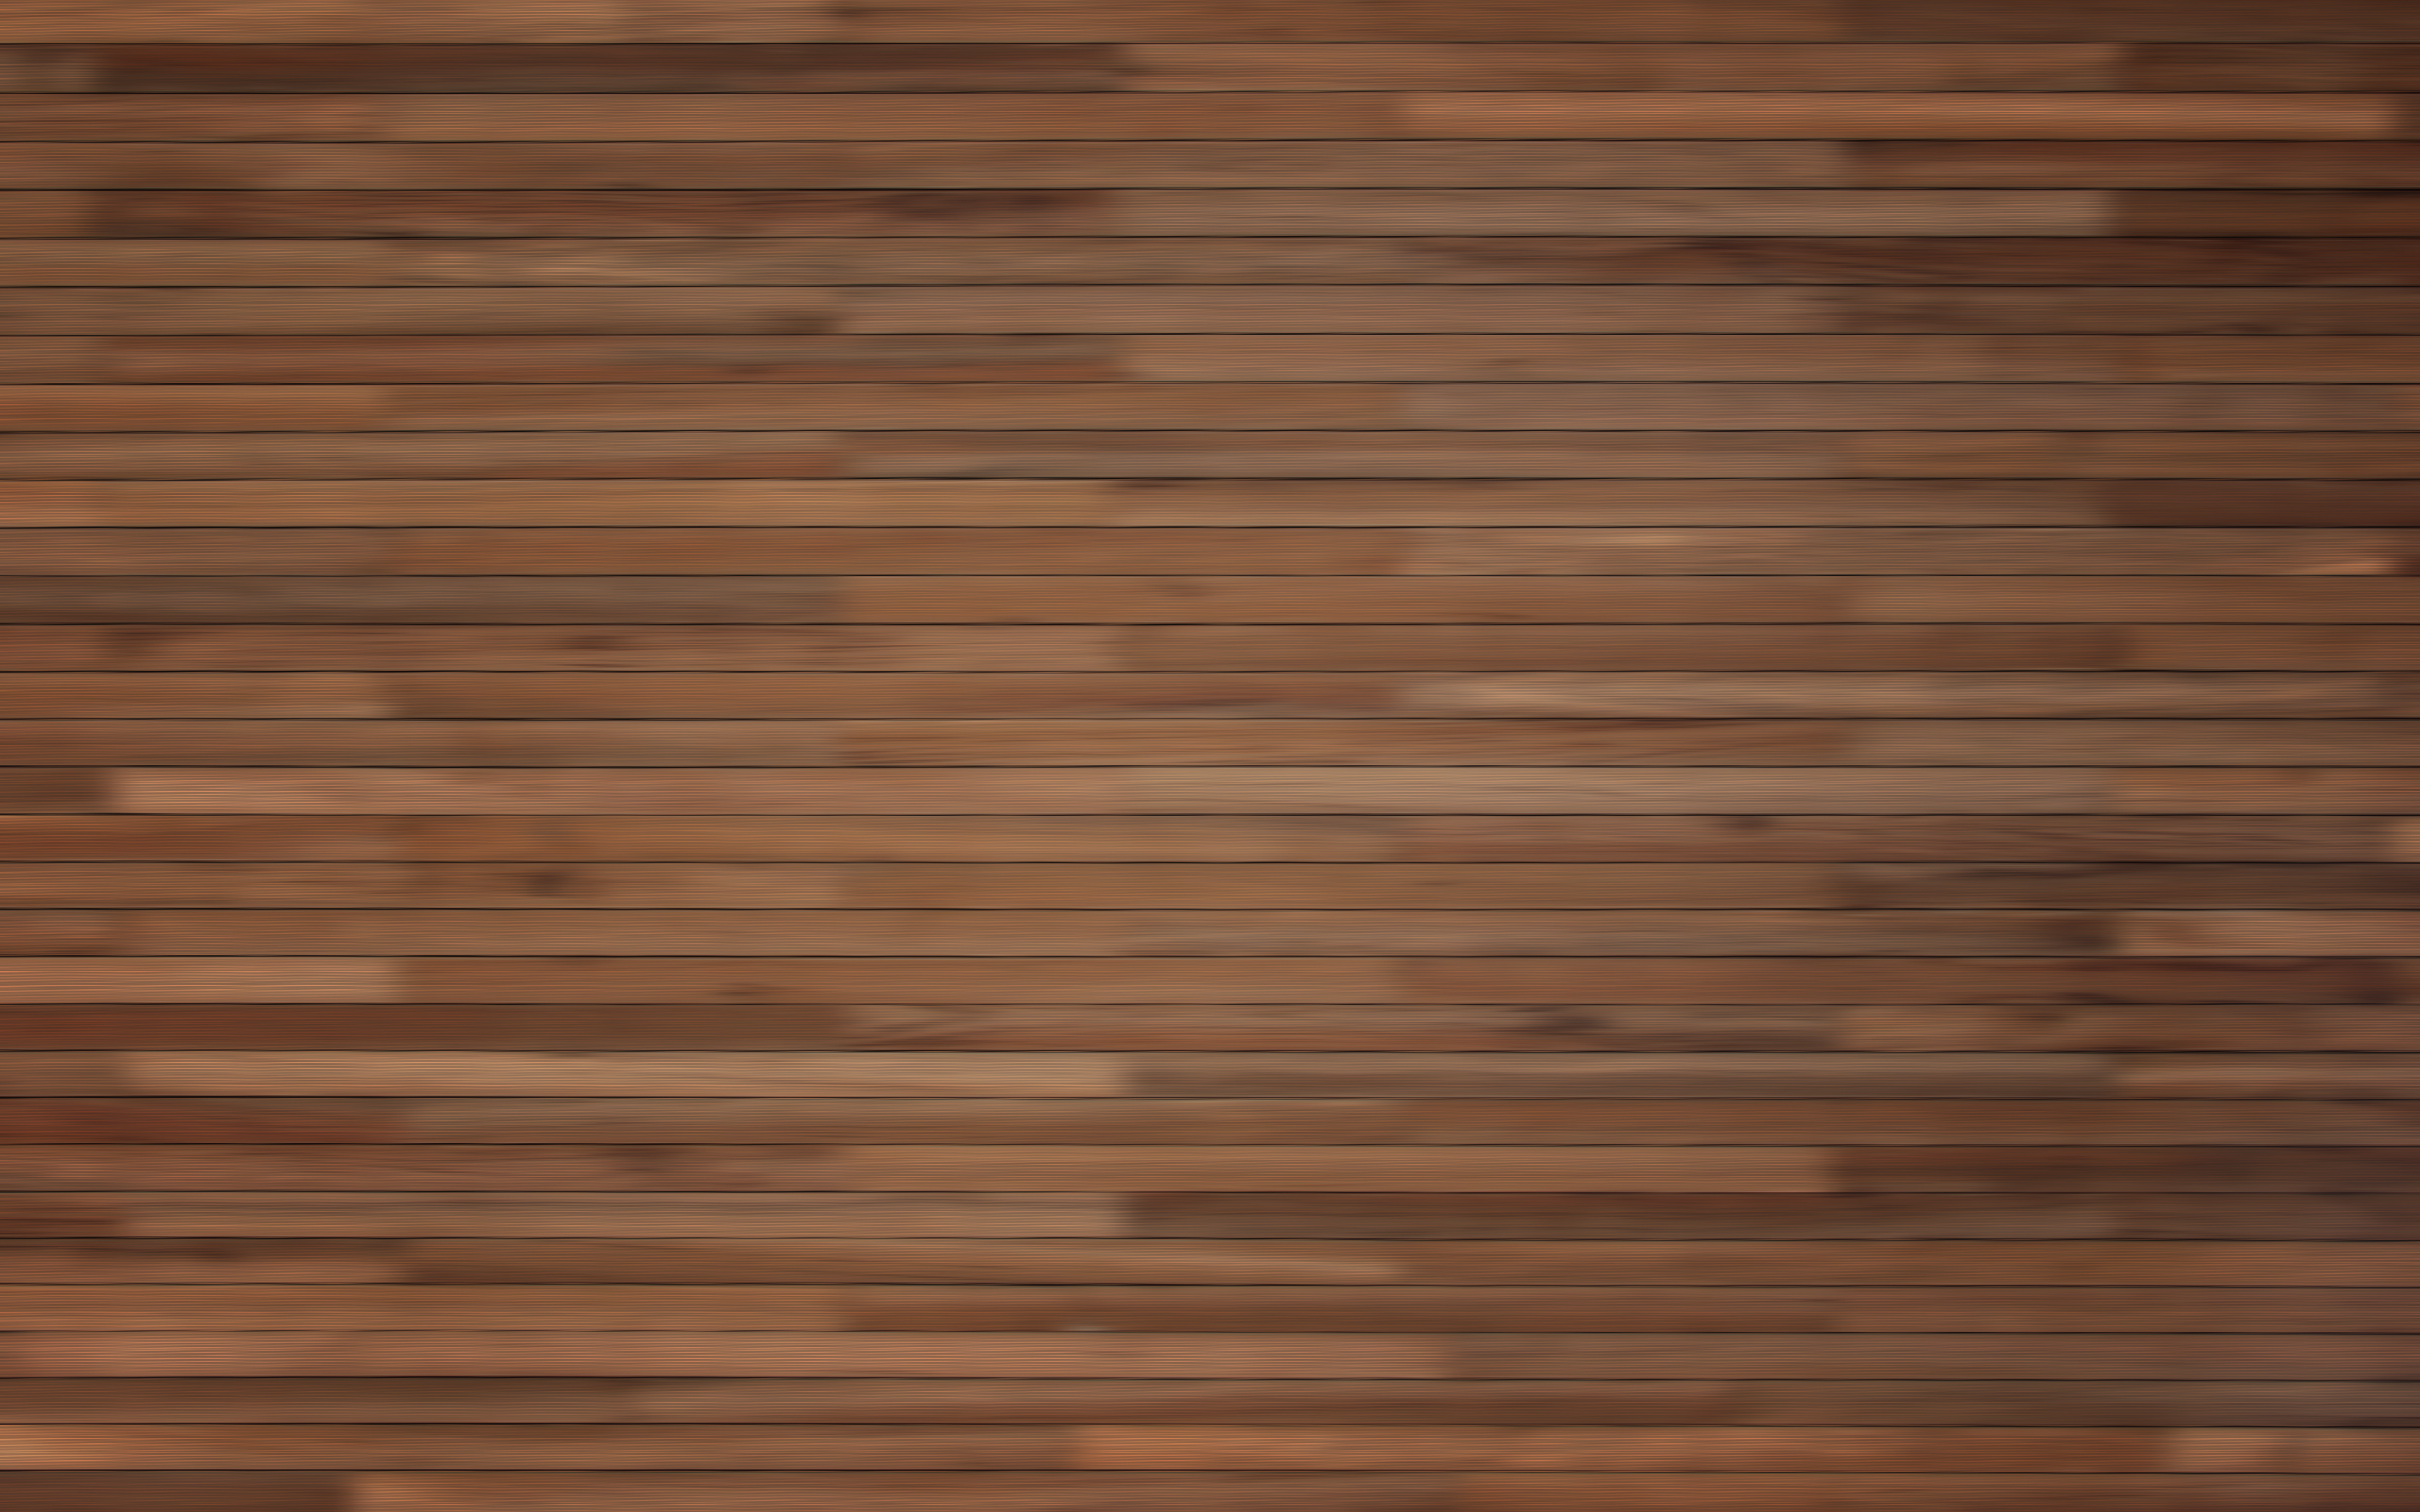 Wooden Texture Download Photo Tree Wood Background Texture